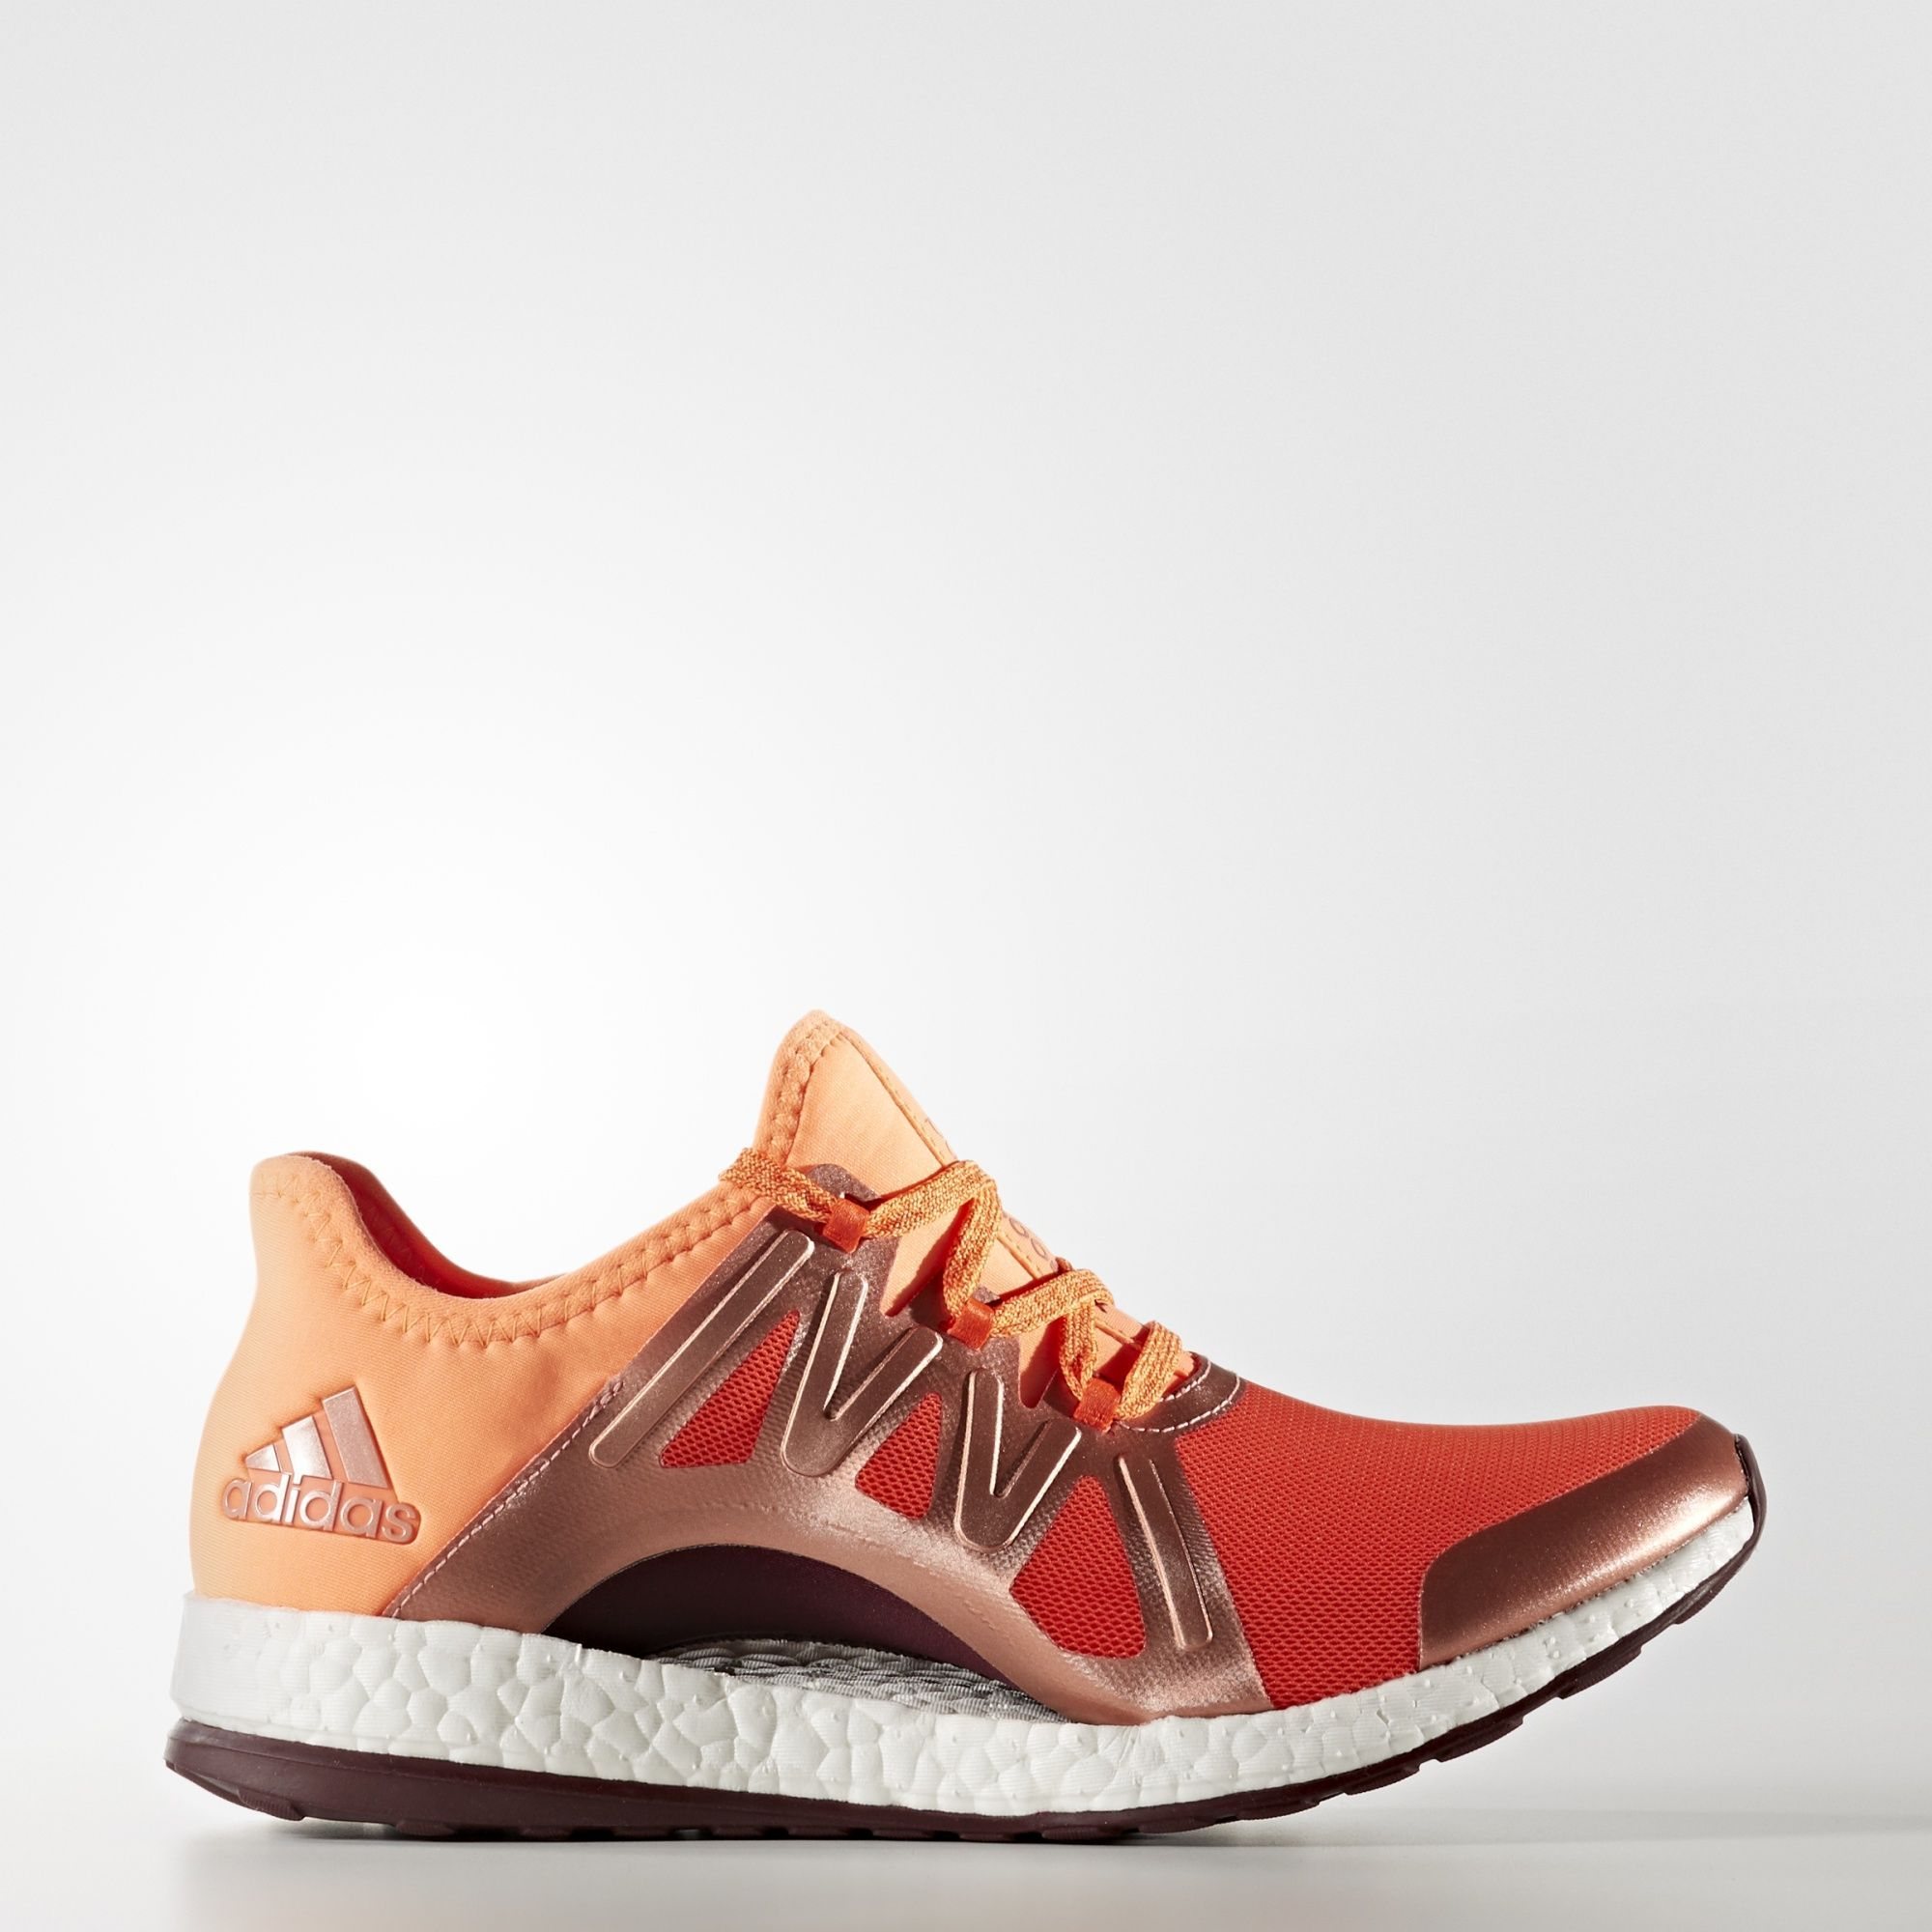 39407273f adidas - PureBOOST Xpose in Energy   Glow Orange   Maroon